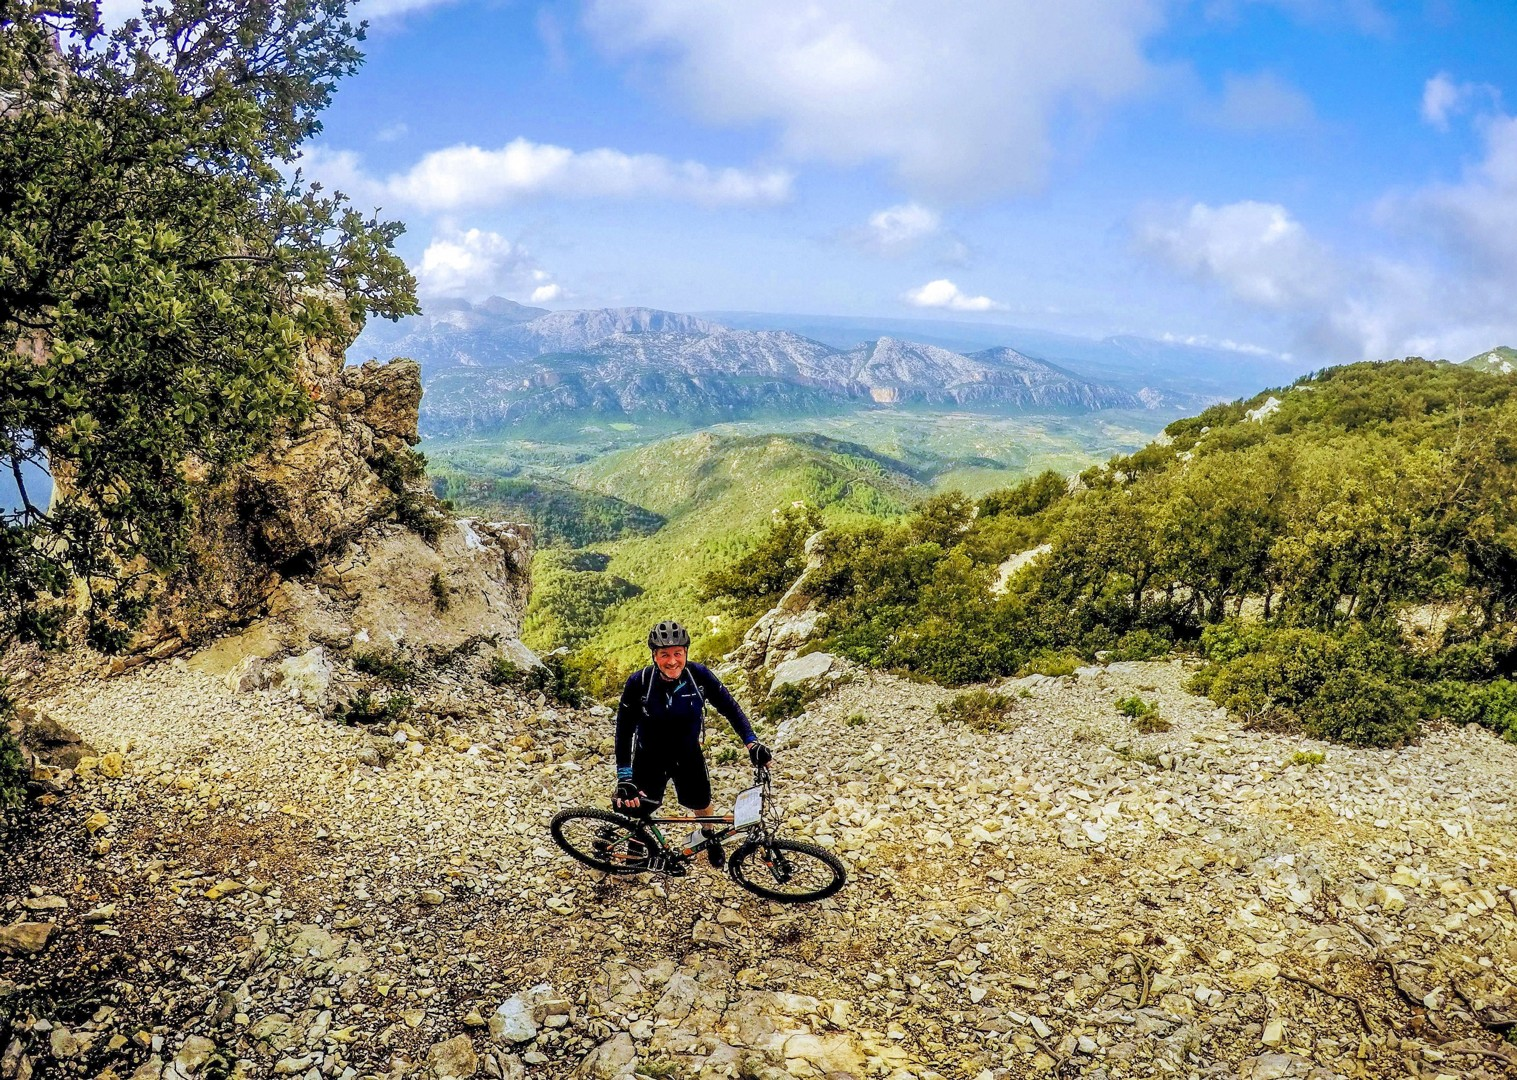 stunning-mountain-gennargentu-range-biking-sardinia.jpg - Italy - Sardinia - Coast to Coast - Self-Guided Mountain Bike Holiday - Italia Mountain Biking